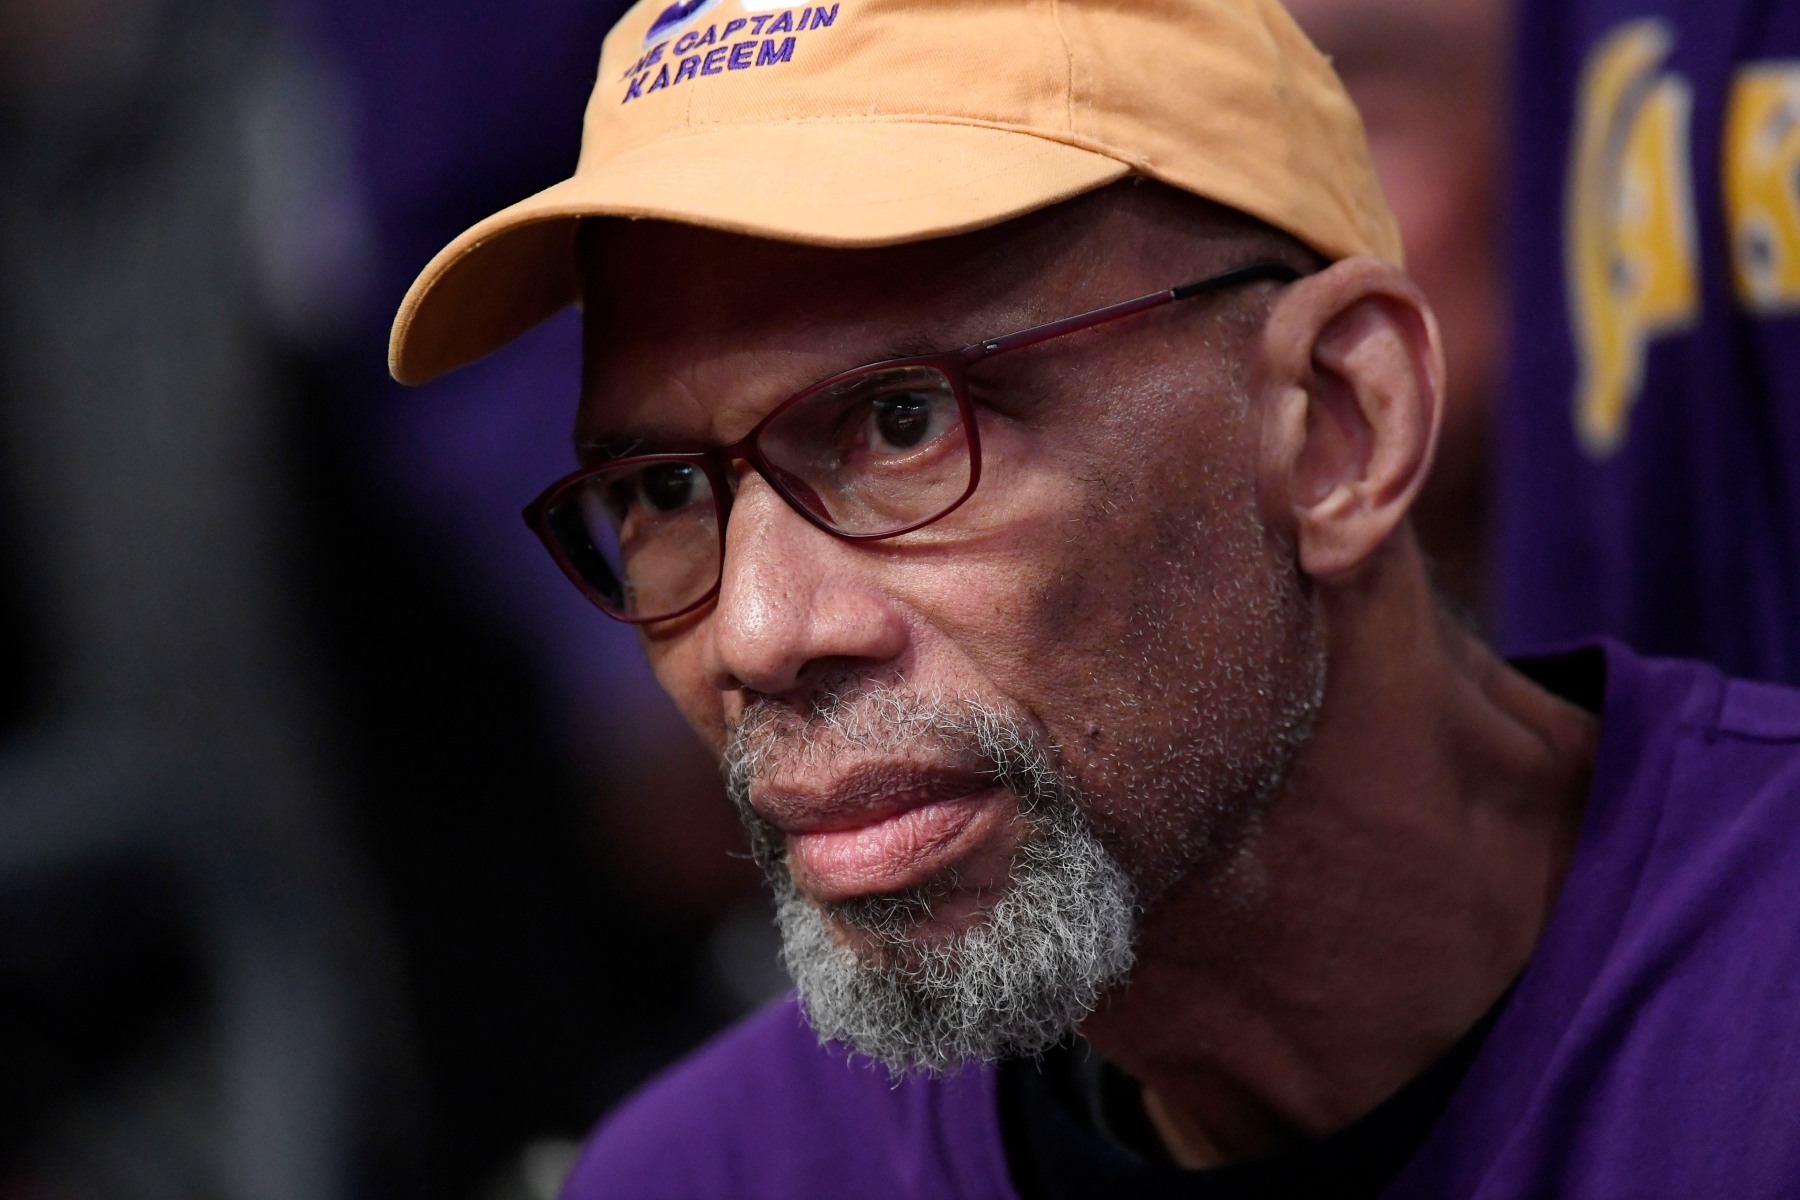 Kareem Abdul-Jabbar Questions Lack of Outrage to Anti-Semitism